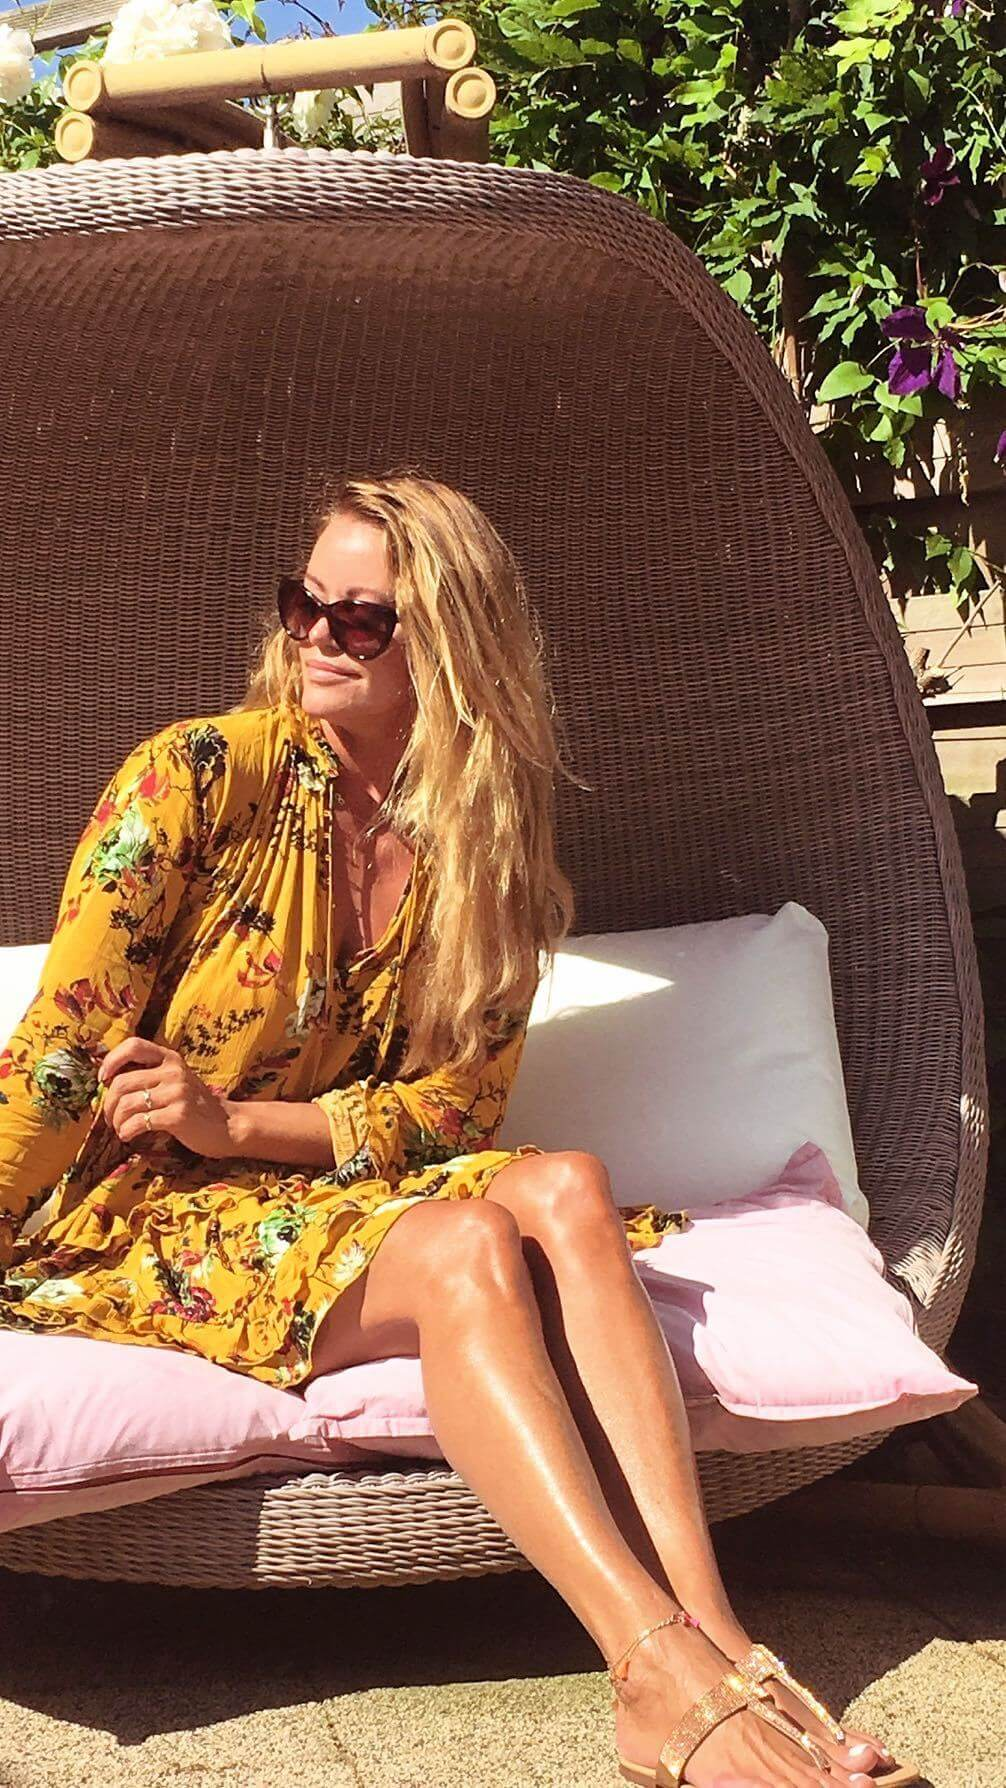 51 Sexy Inge de Bruijn Boobs Pictures That Will Make Your Heart Pound For Her 32